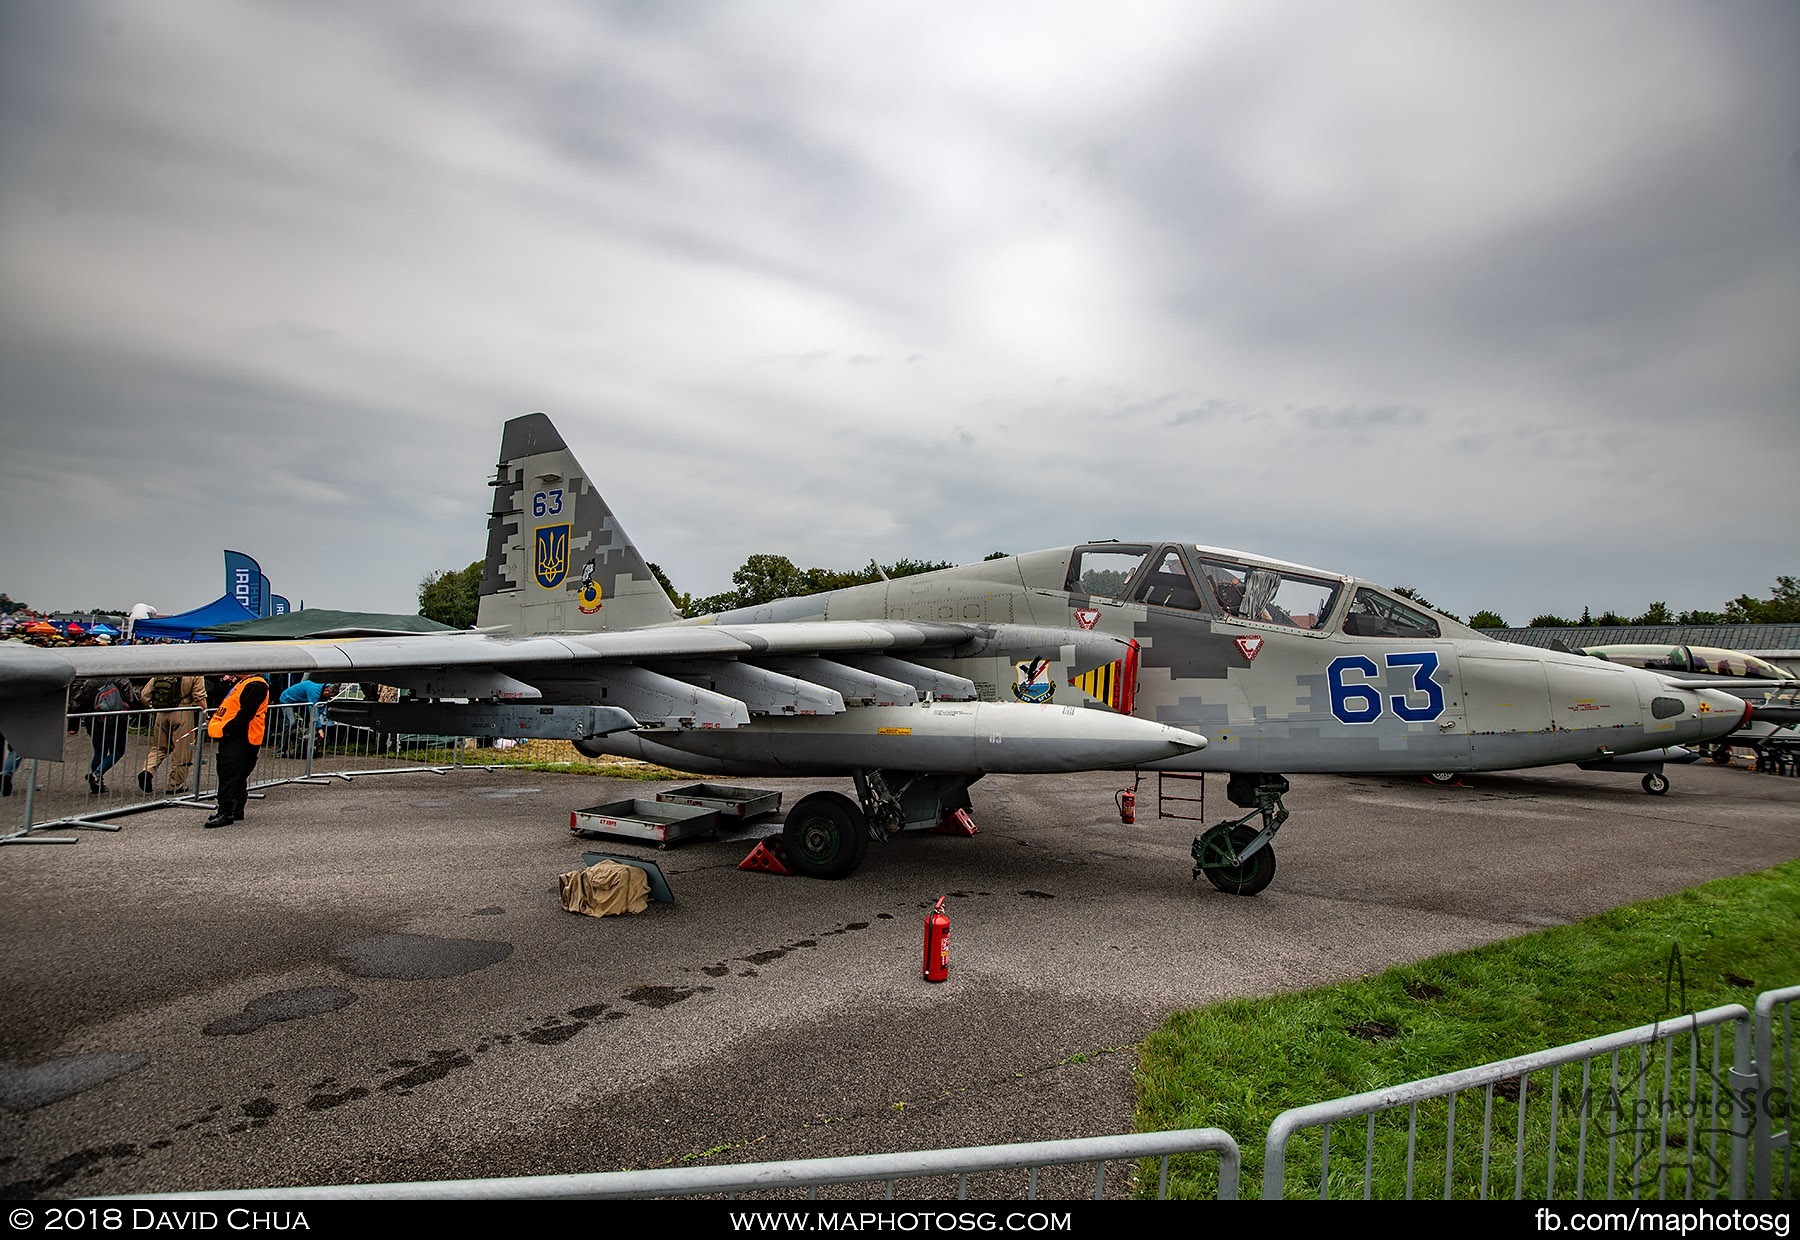 09. Side profile of the Ukranian Air Force Su-25 Frogfoot